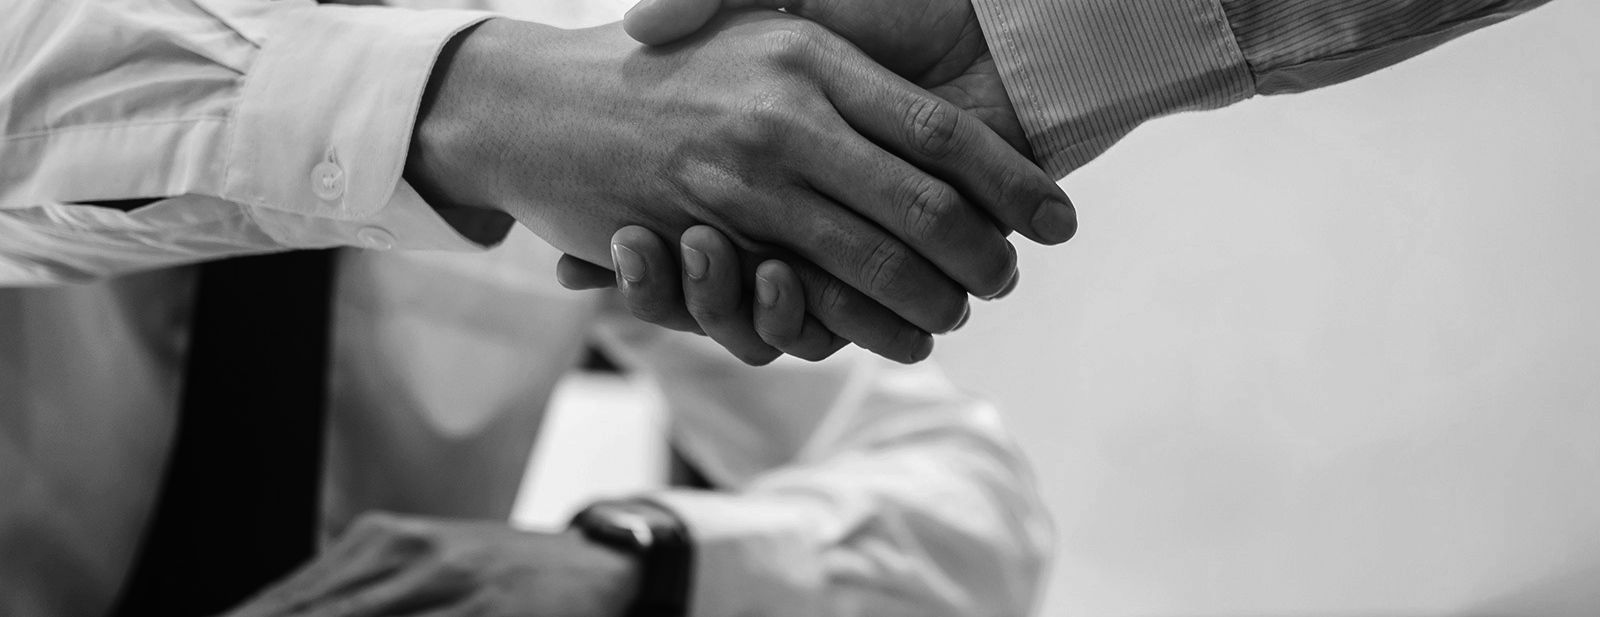 Broker agent and customer shaking hands after signing contract documents.